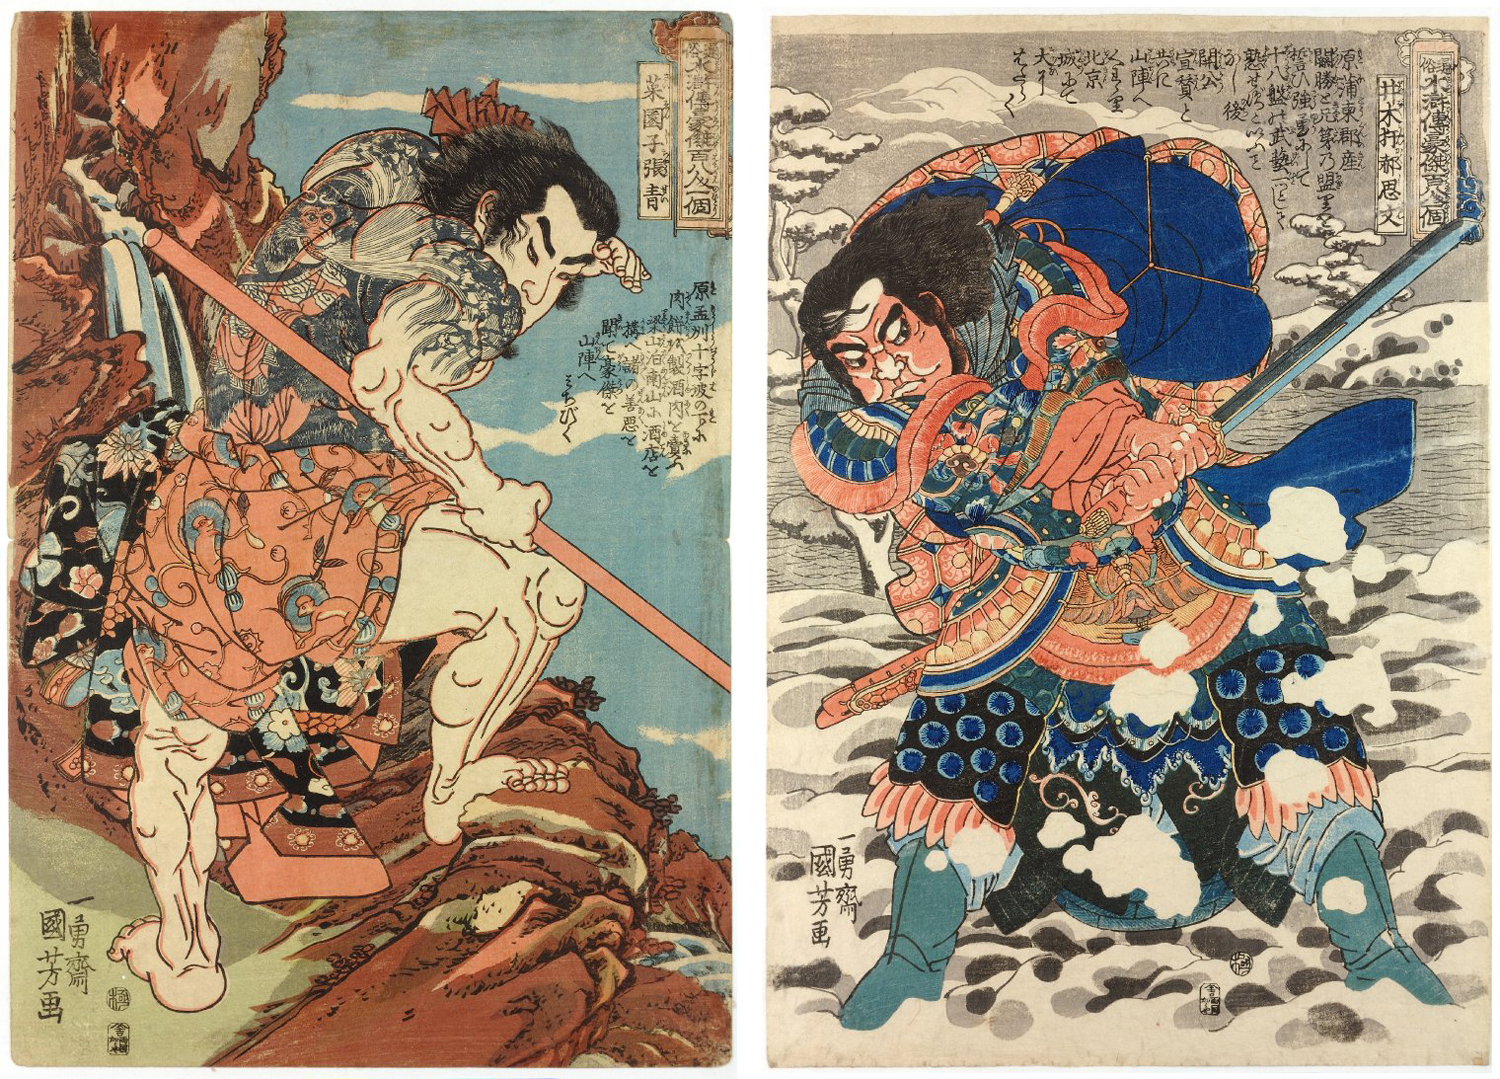 Two prints from the series 108 Heroes of the Popular Water Margin. Left: Saienshi Chosei (c. 1827–30), woodblock print. Right: Seibokukan Kakushibun (c.